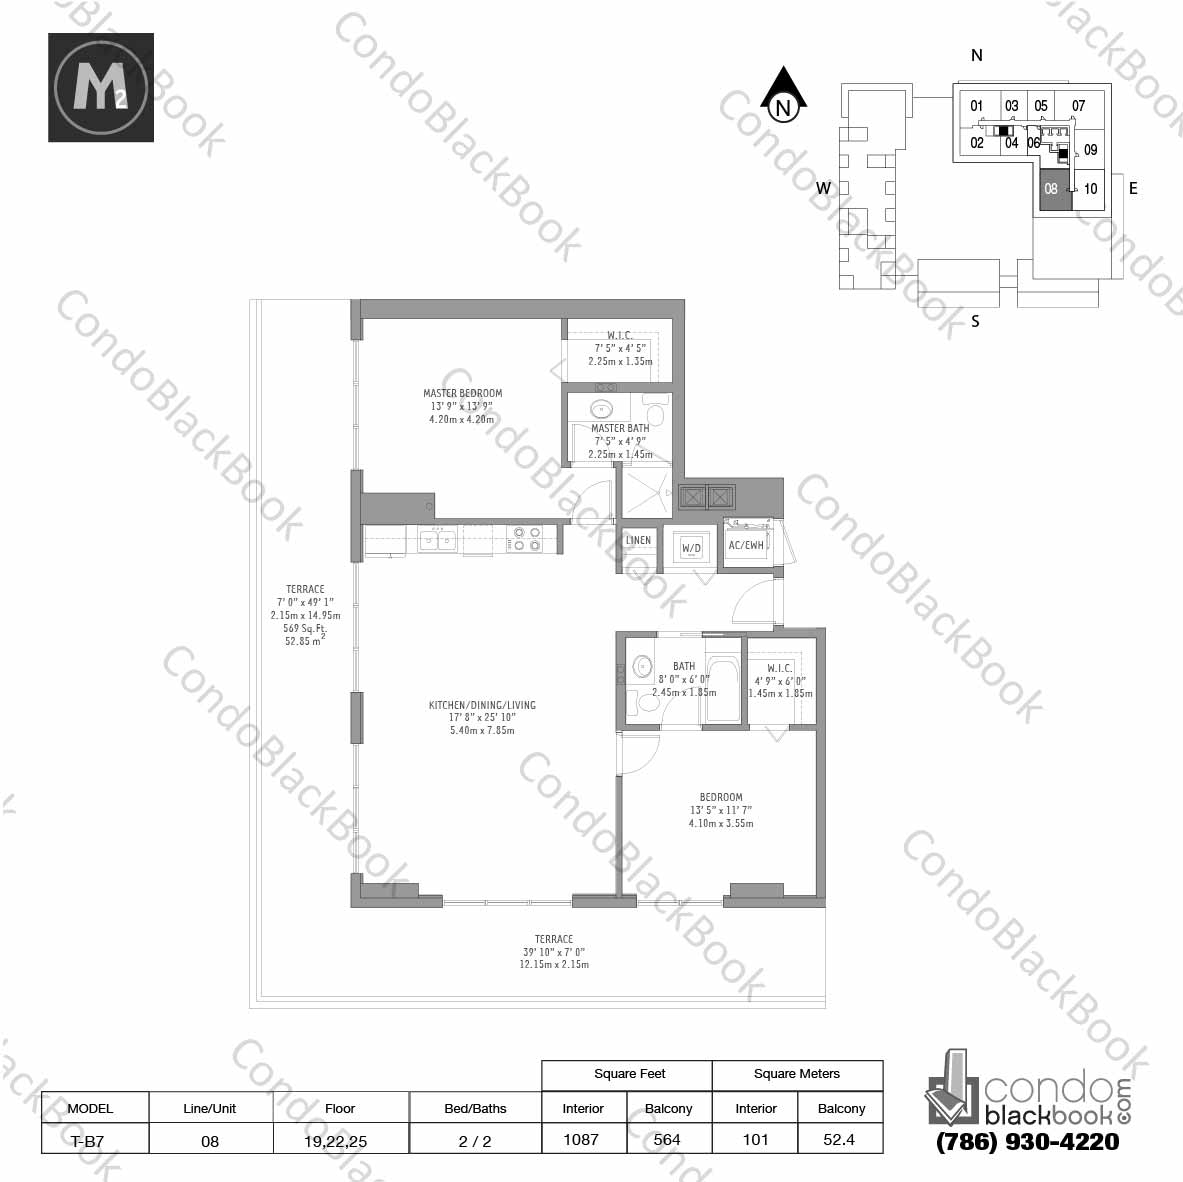 Floor plan for Midtown 2 Midtown Miami, model T-B7, line 08, 2 / 2 bedrooms, 1087 sq ft